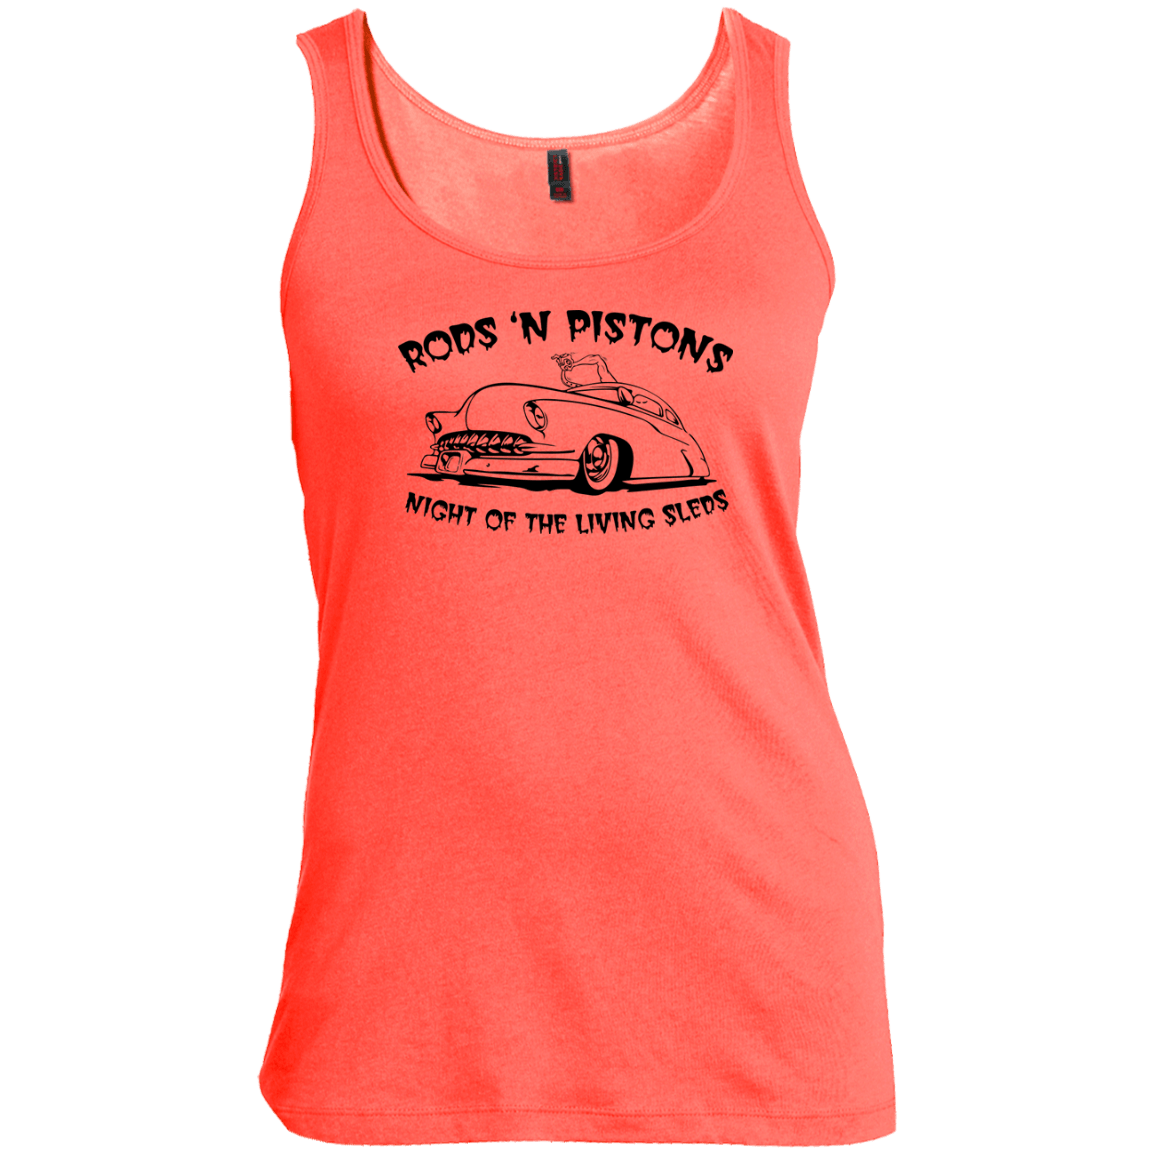 Night of the living Sled Women's Scoop Neck Tank Top